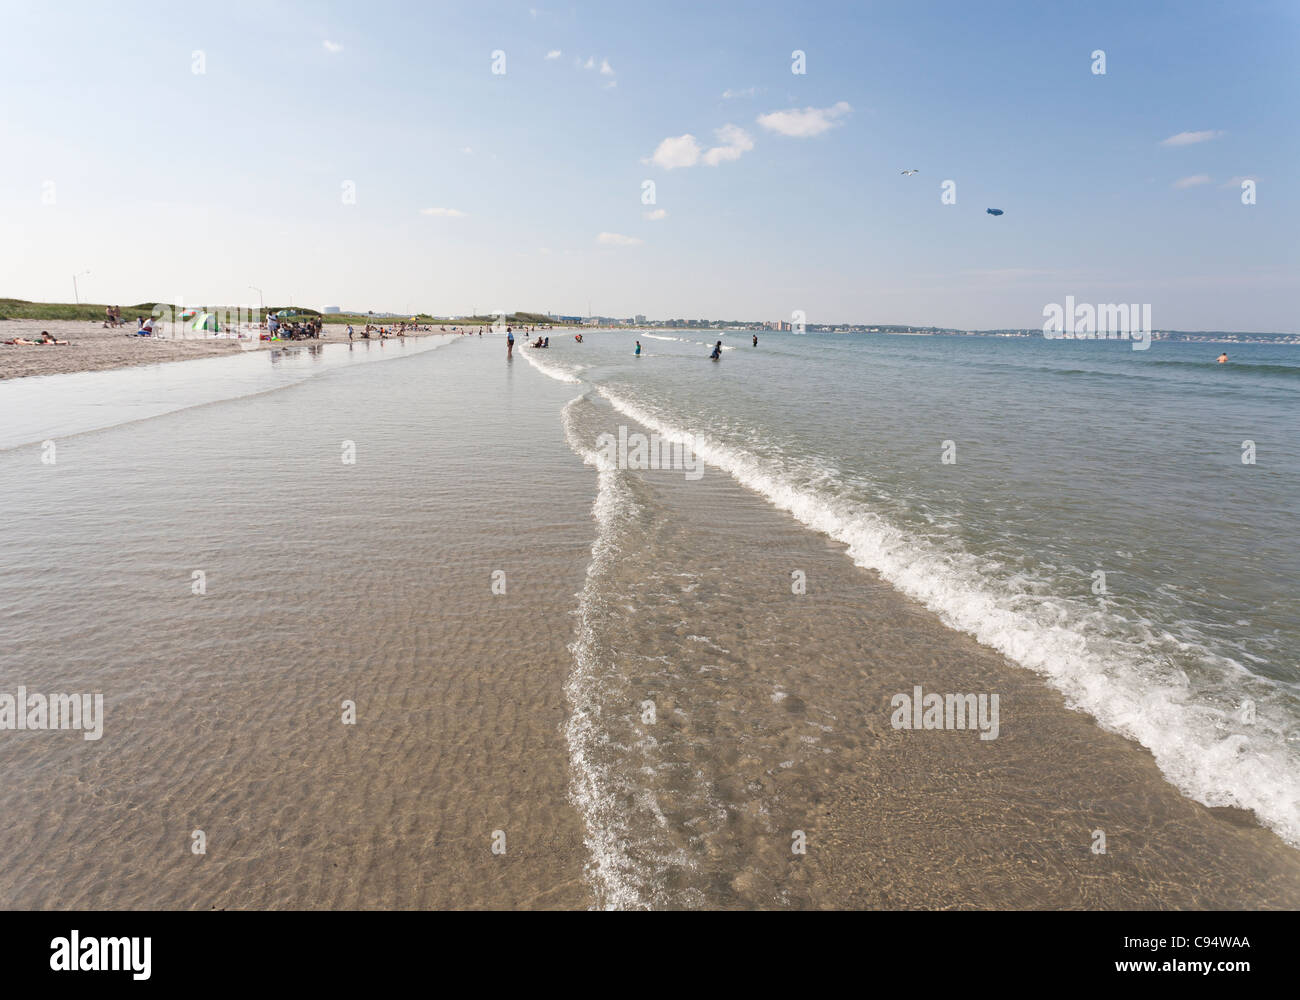 Shallow water waves with blimp and seagull overhead. The view toward Lynn of Long Beach's inviting shallow sandy - Stock Image